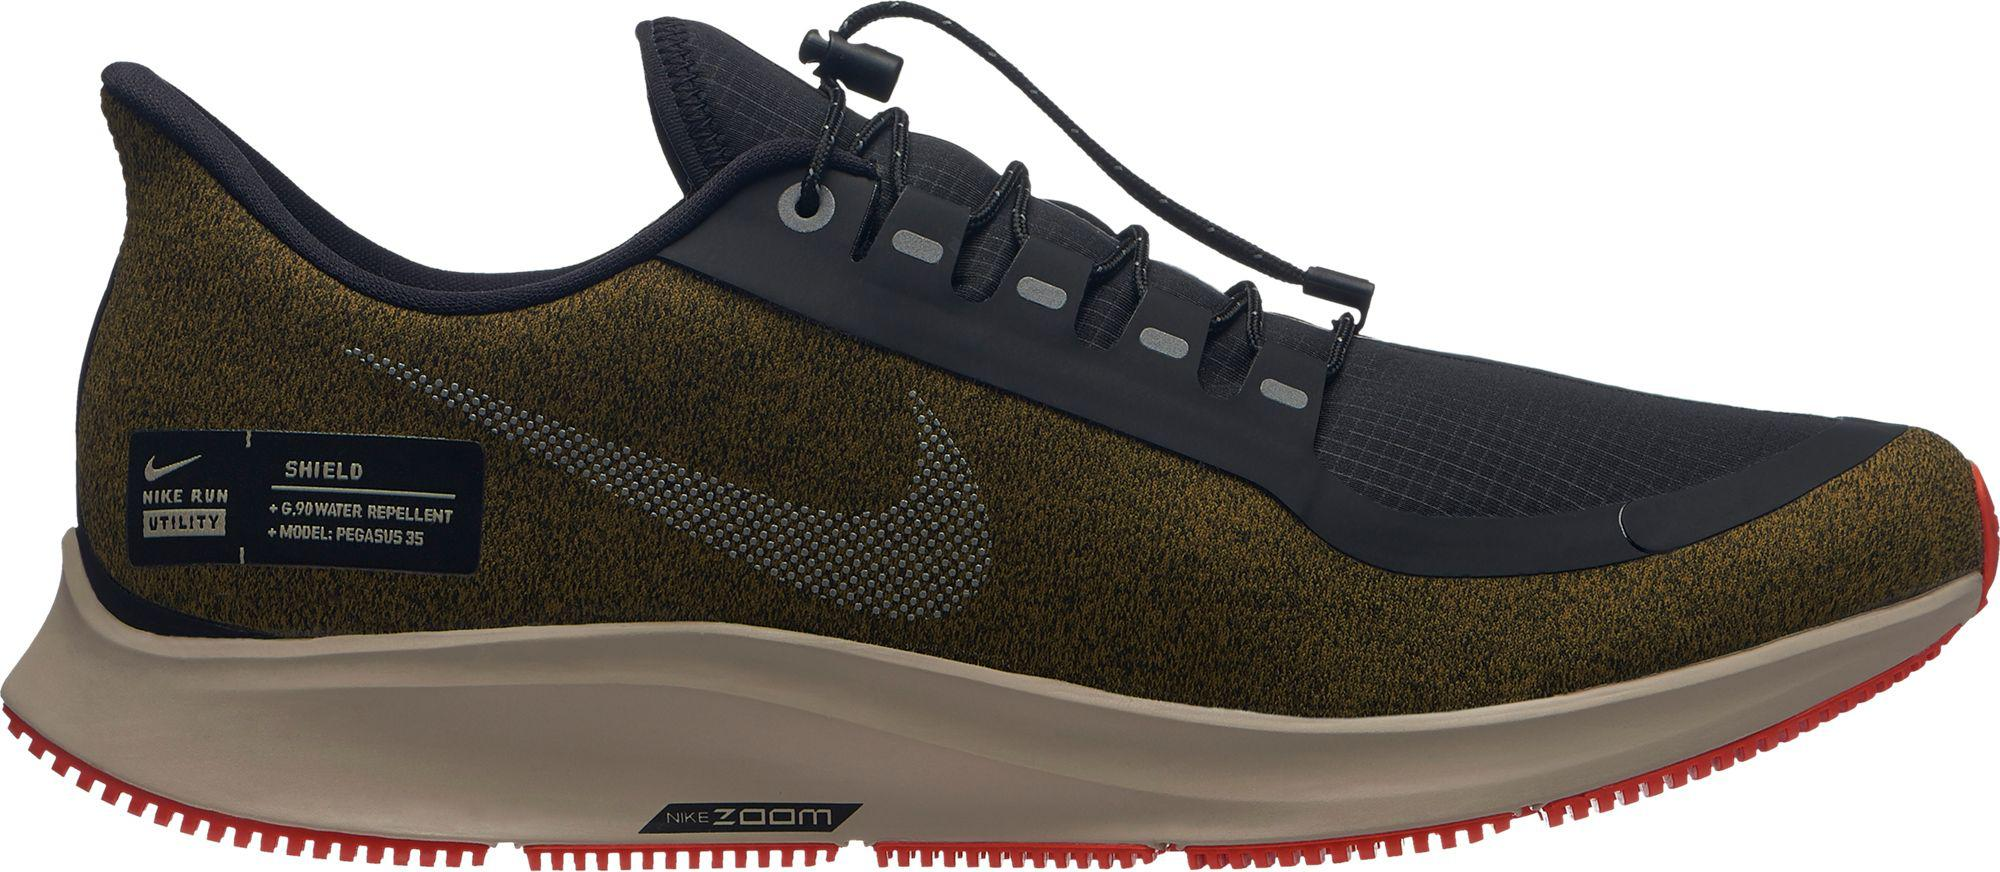 994527623ce77 Lyst - Nike Air Zoom Pegasus 35 Shield Running Shoes in Black for Men